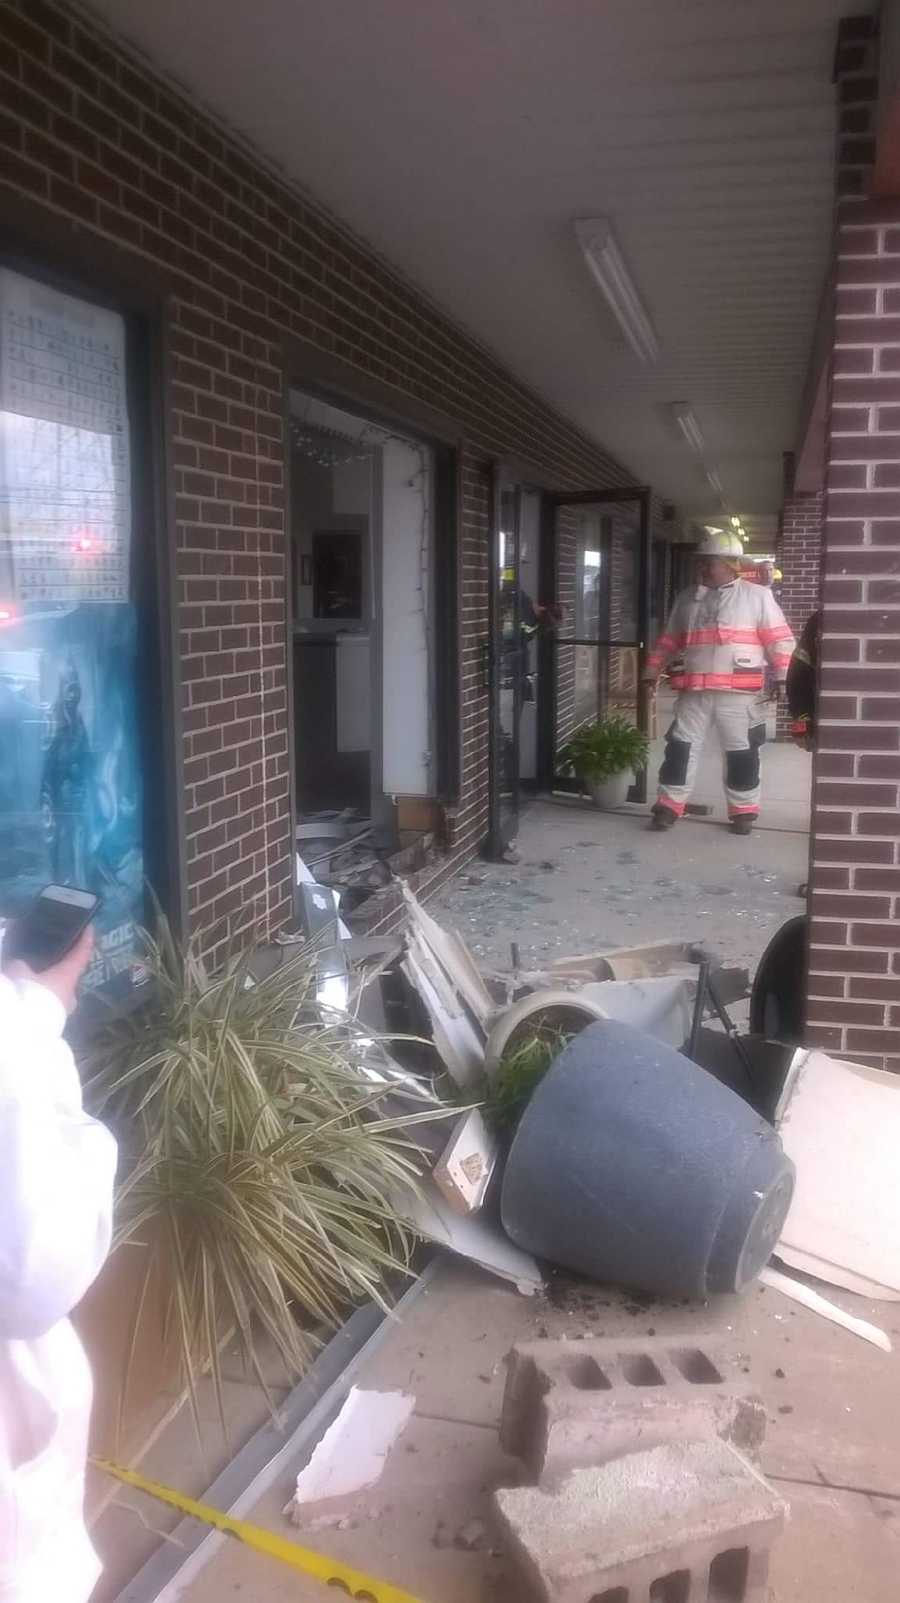 Nine people were injured Saturday when a vehicle crashed into a salon in Dundalk.